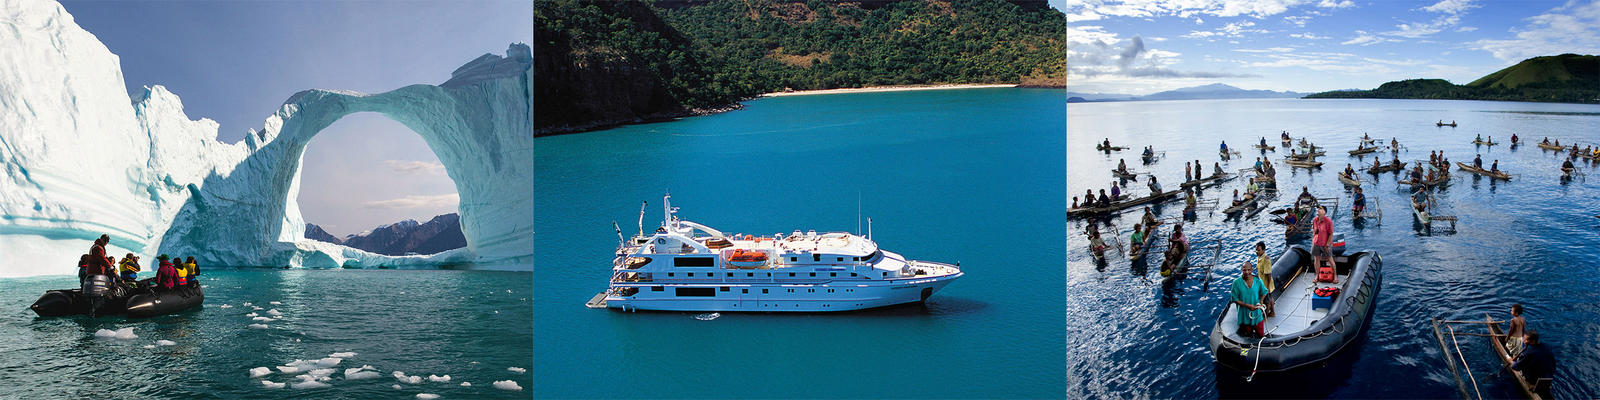 best aurora expeditions cruises 2018 reviews and photos